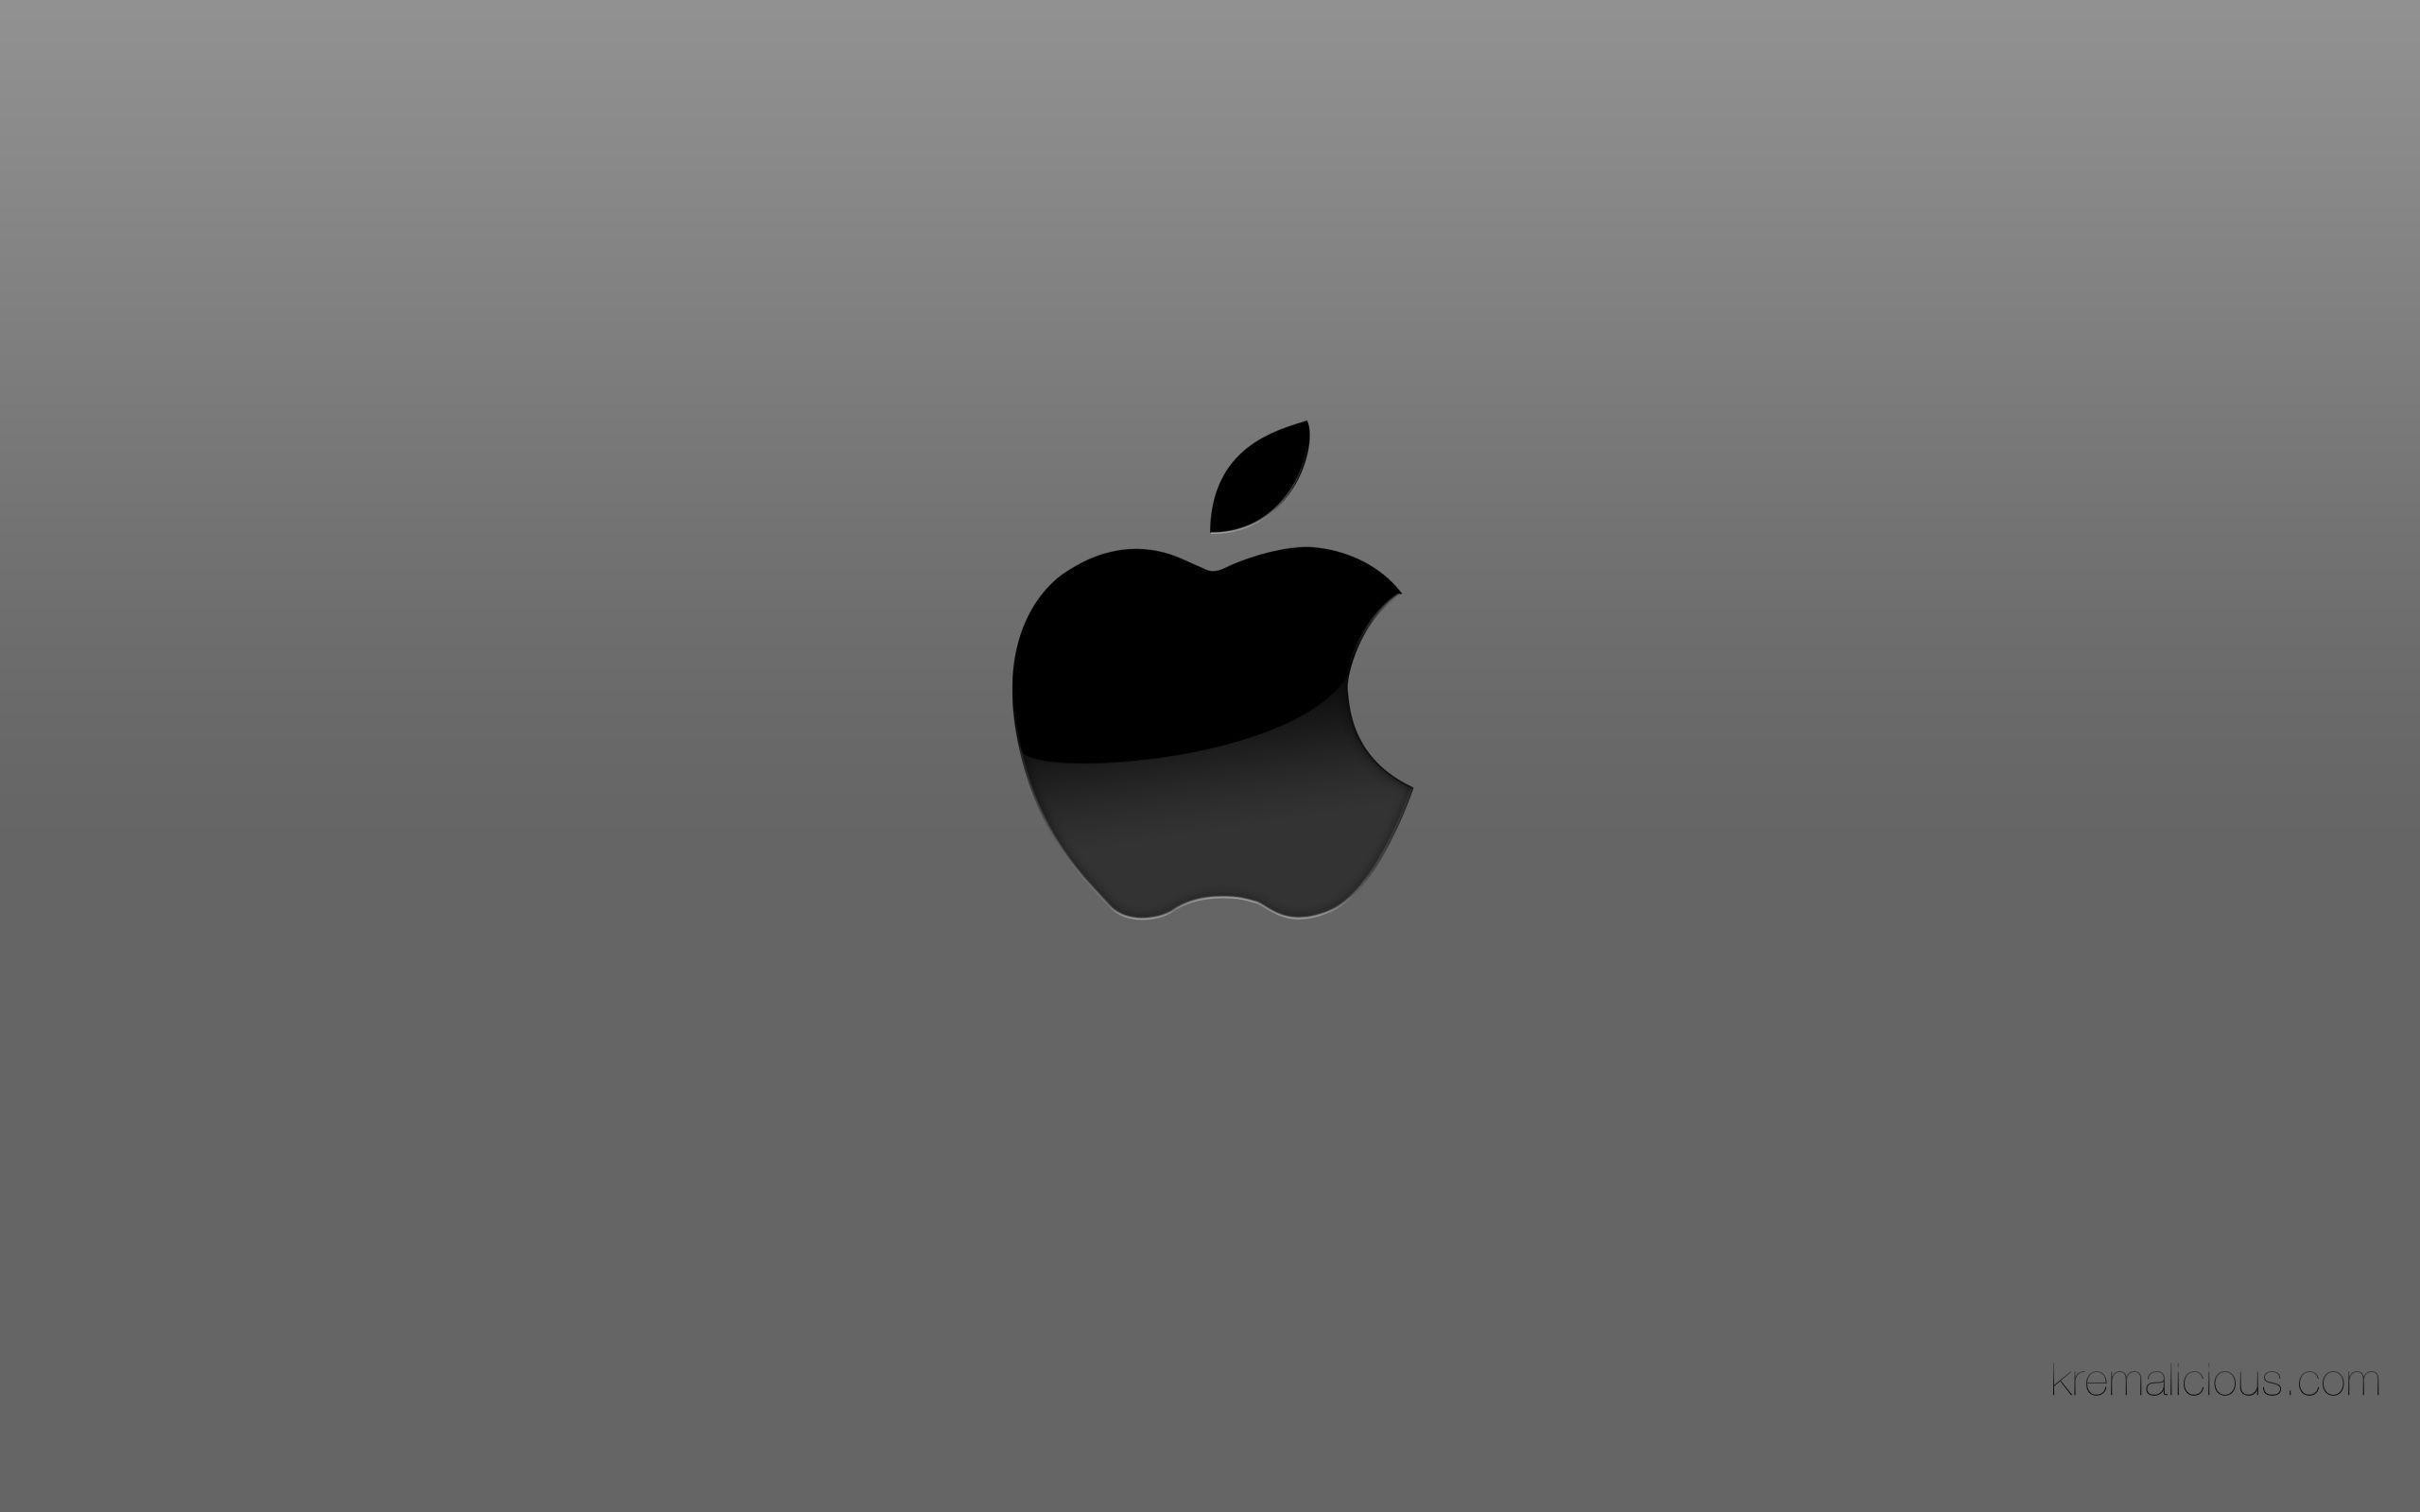 apple logo hd wallpaper ·①